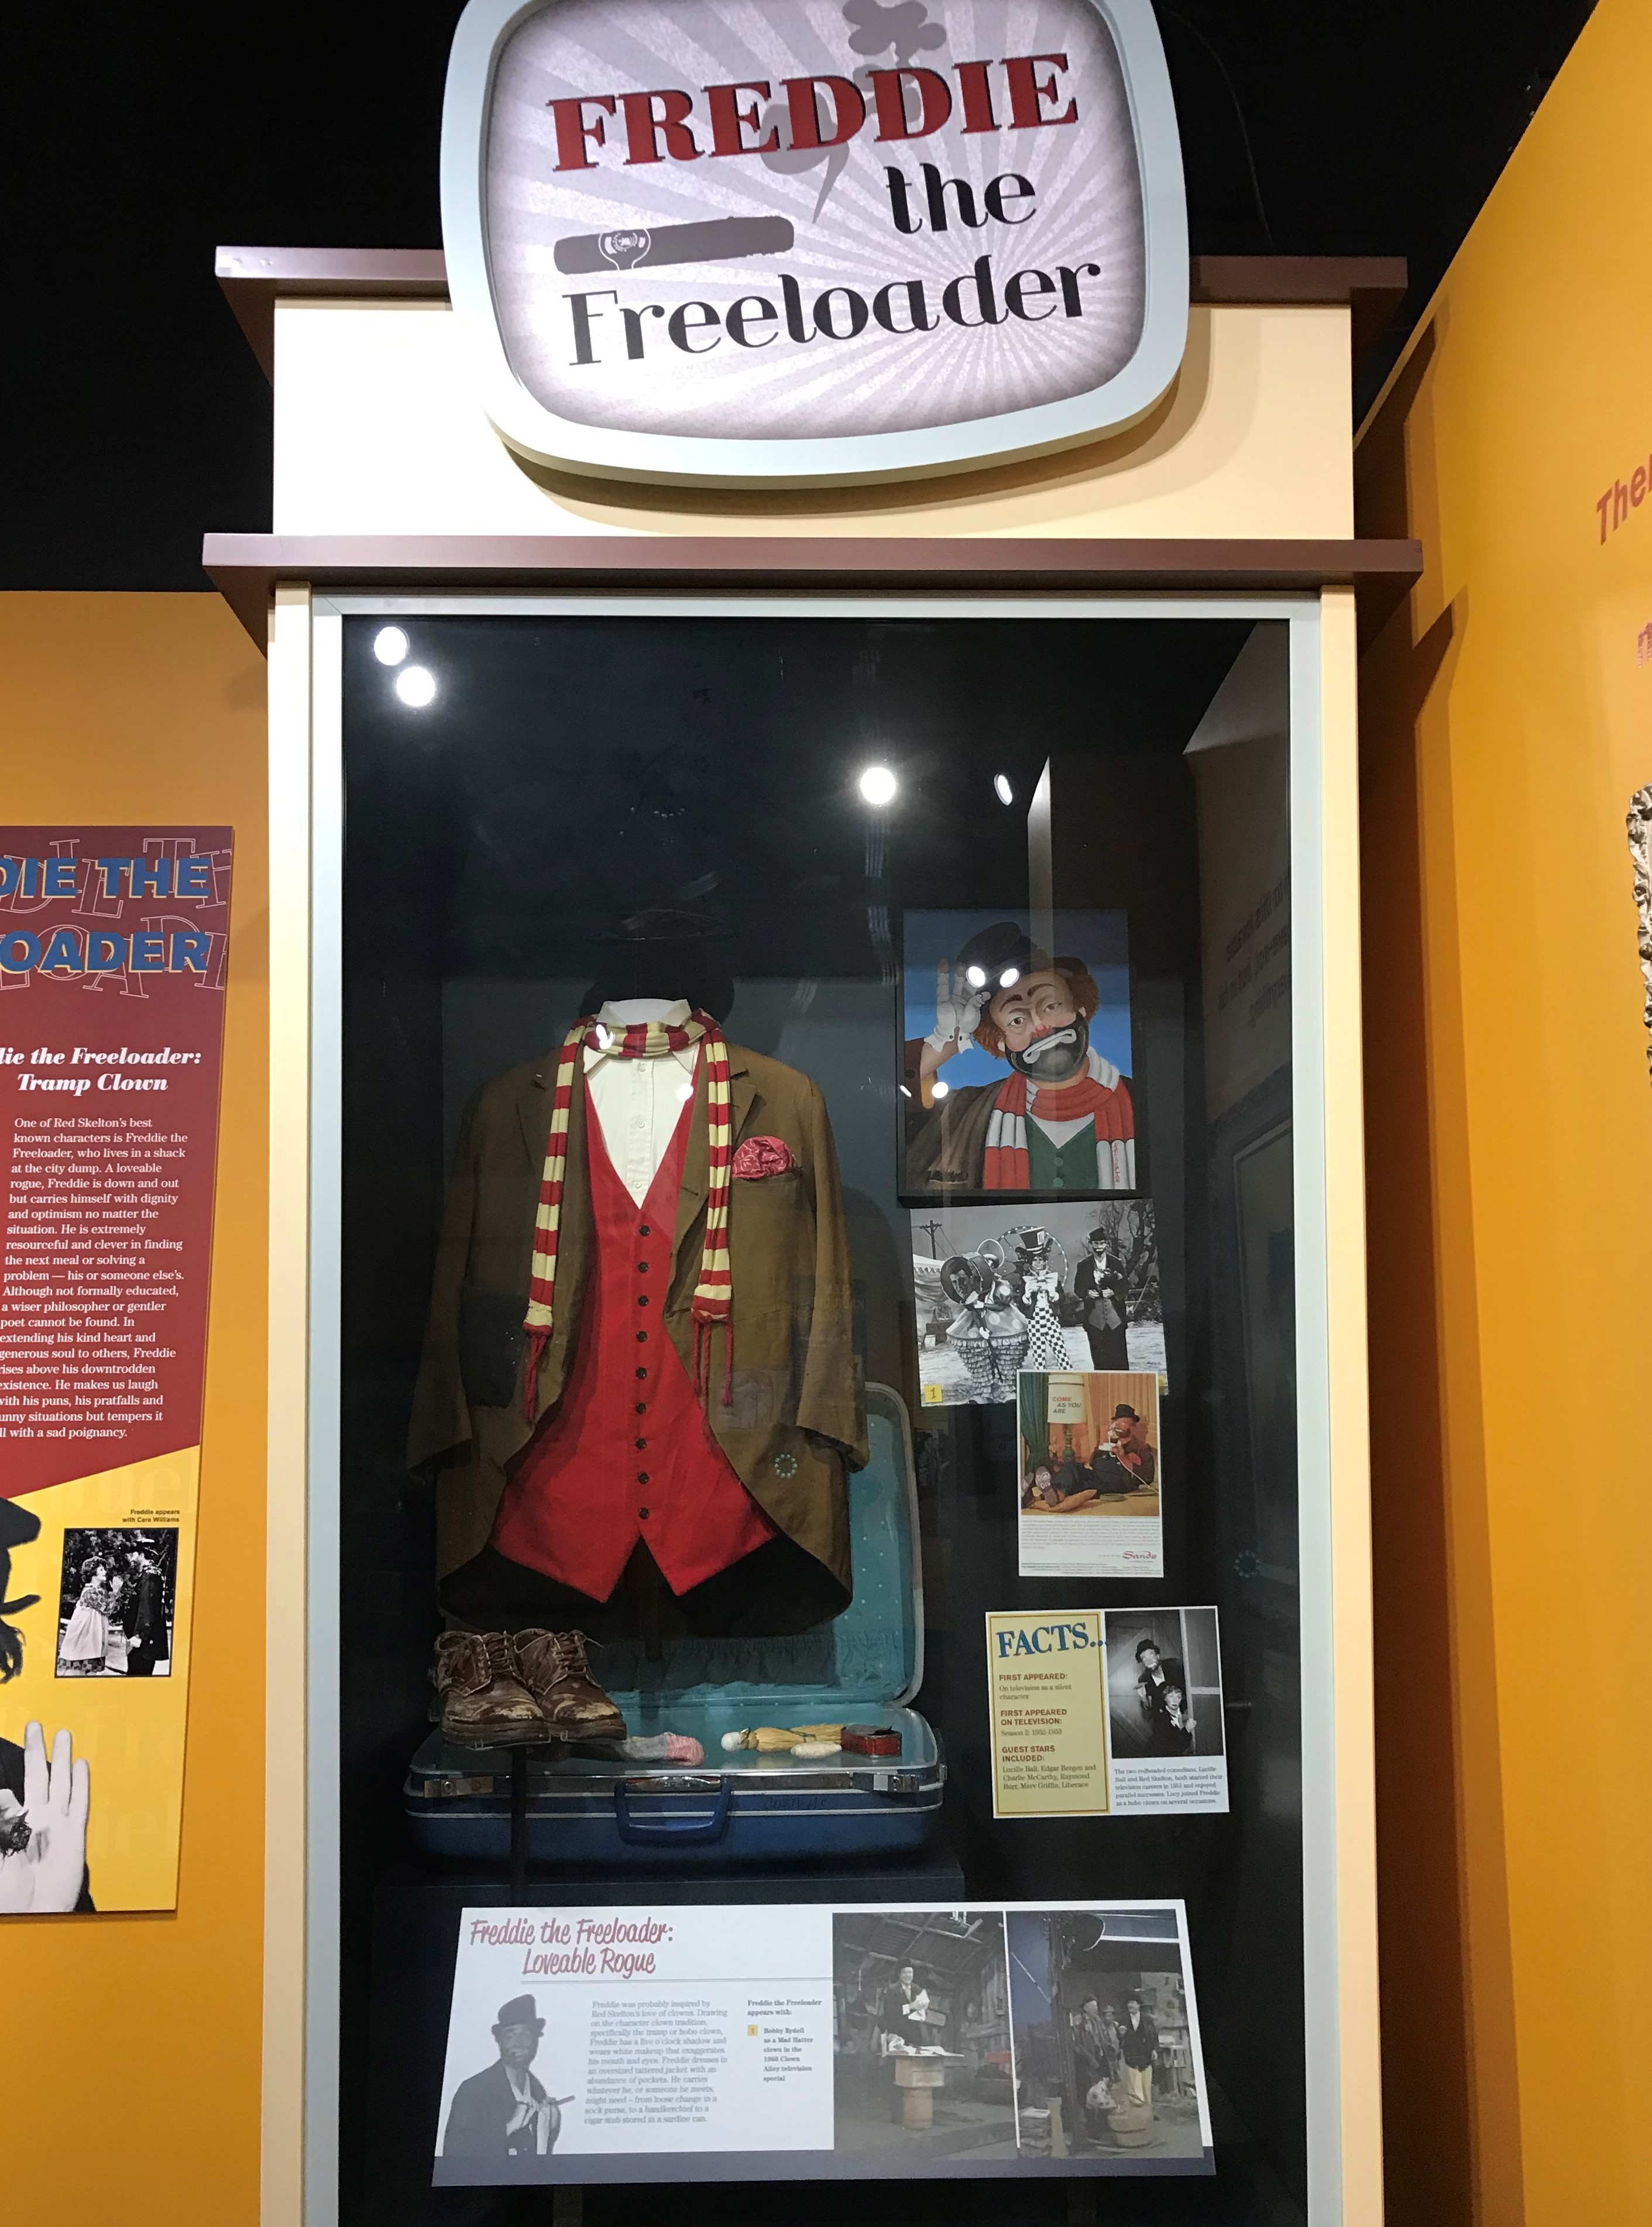 Freddie the Freeloader was my favorite!